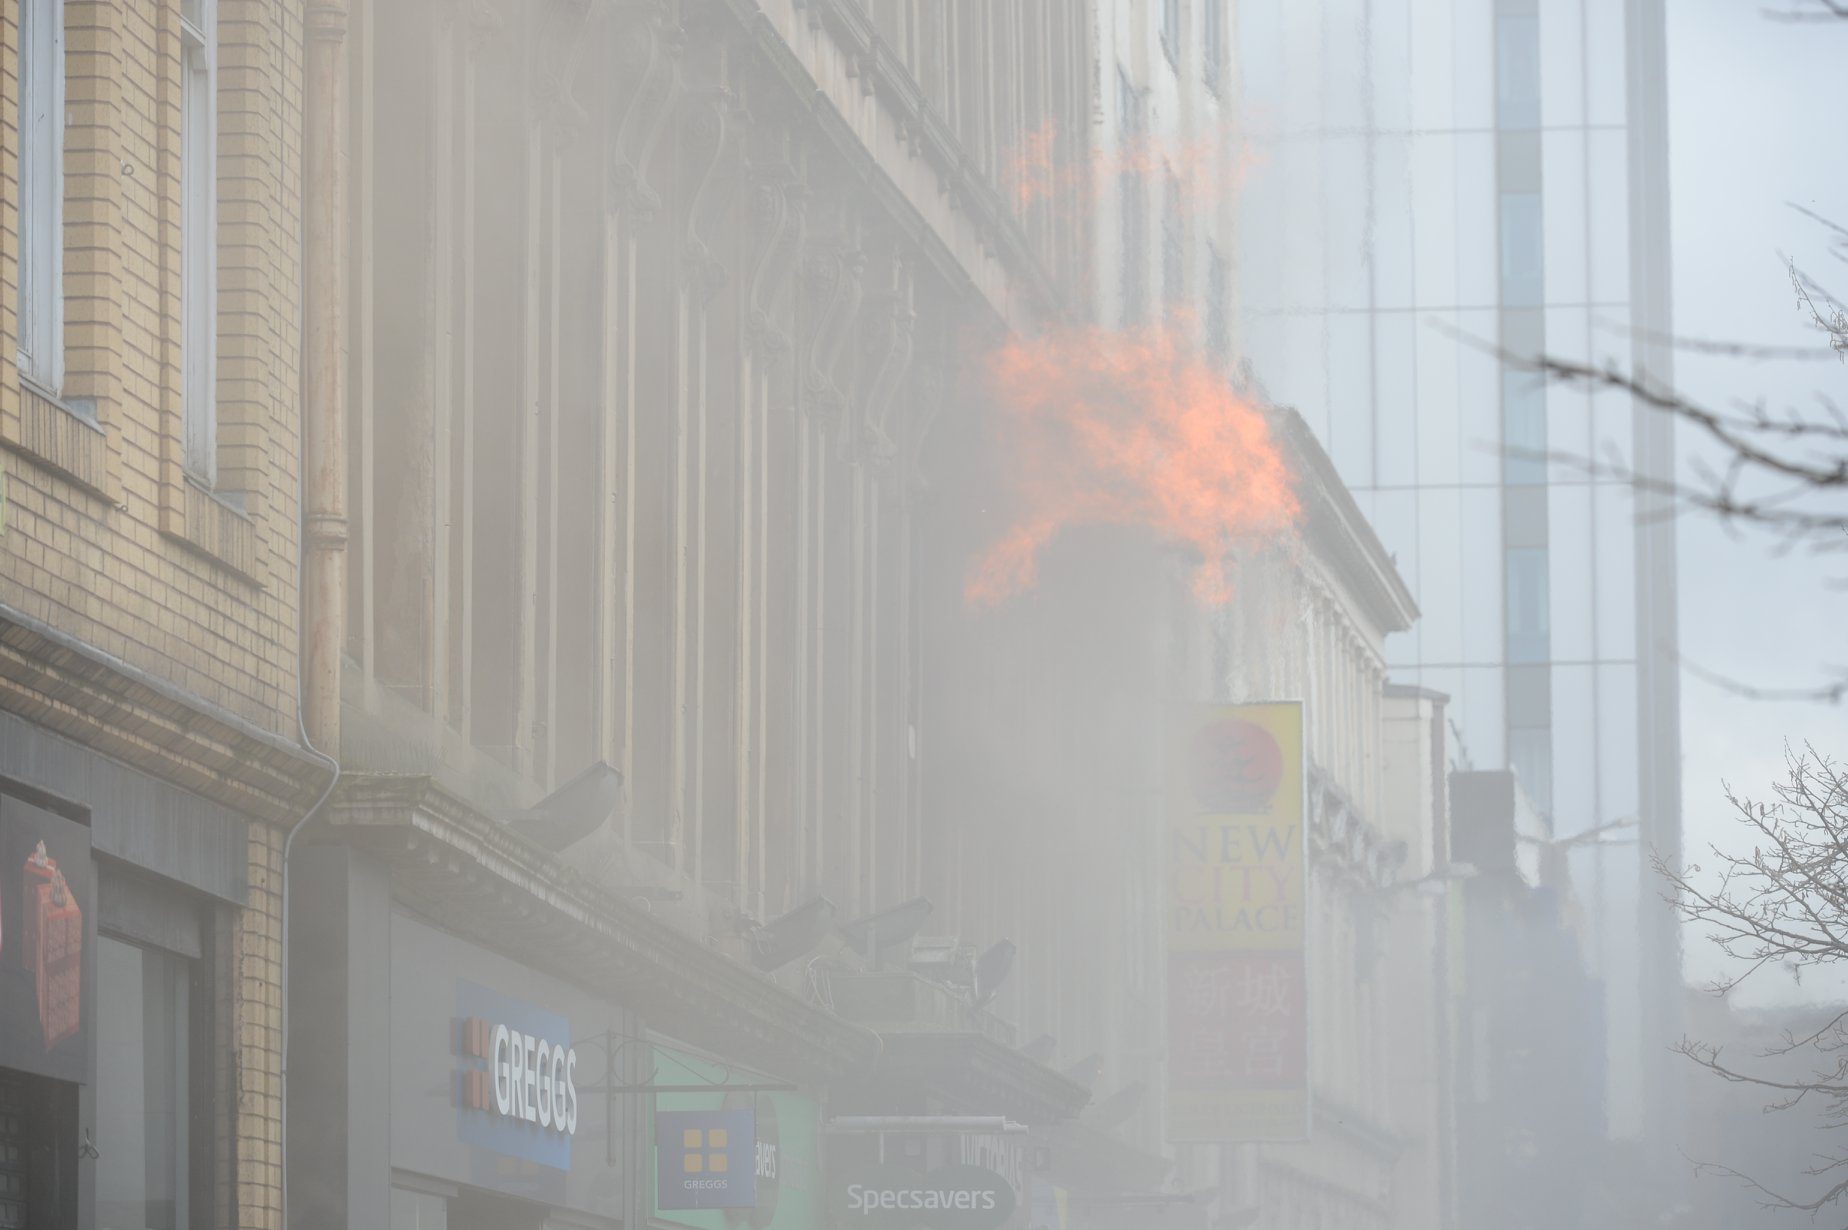 Victoria's nightclub manager 'devastated' after Sauchiehall Street fire in Glasgow